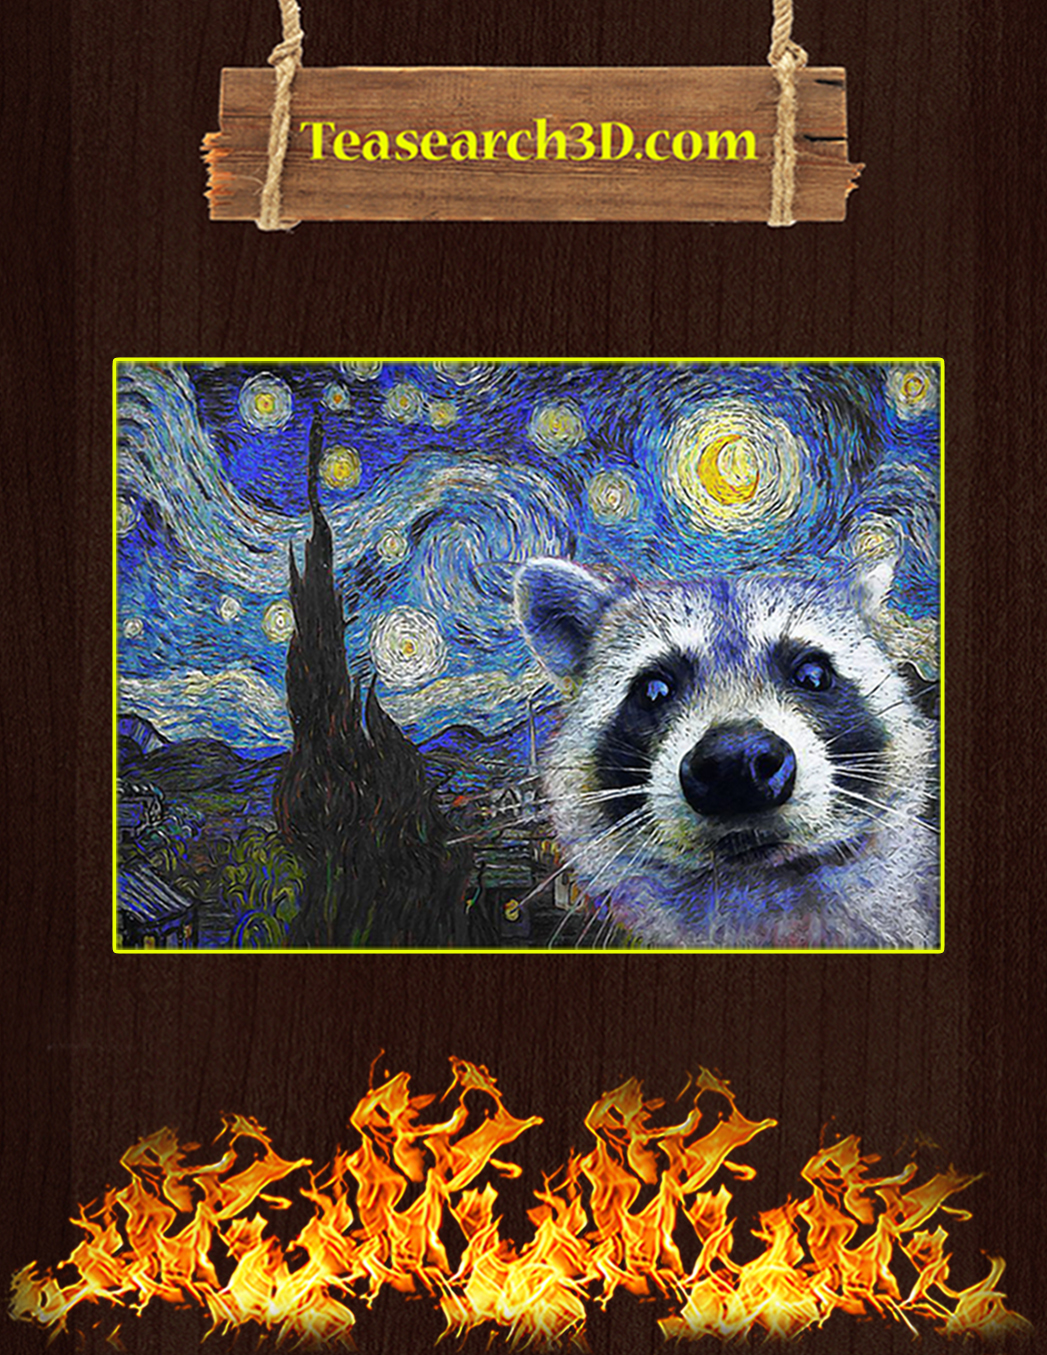 Racoon starry night van gogh poster A1